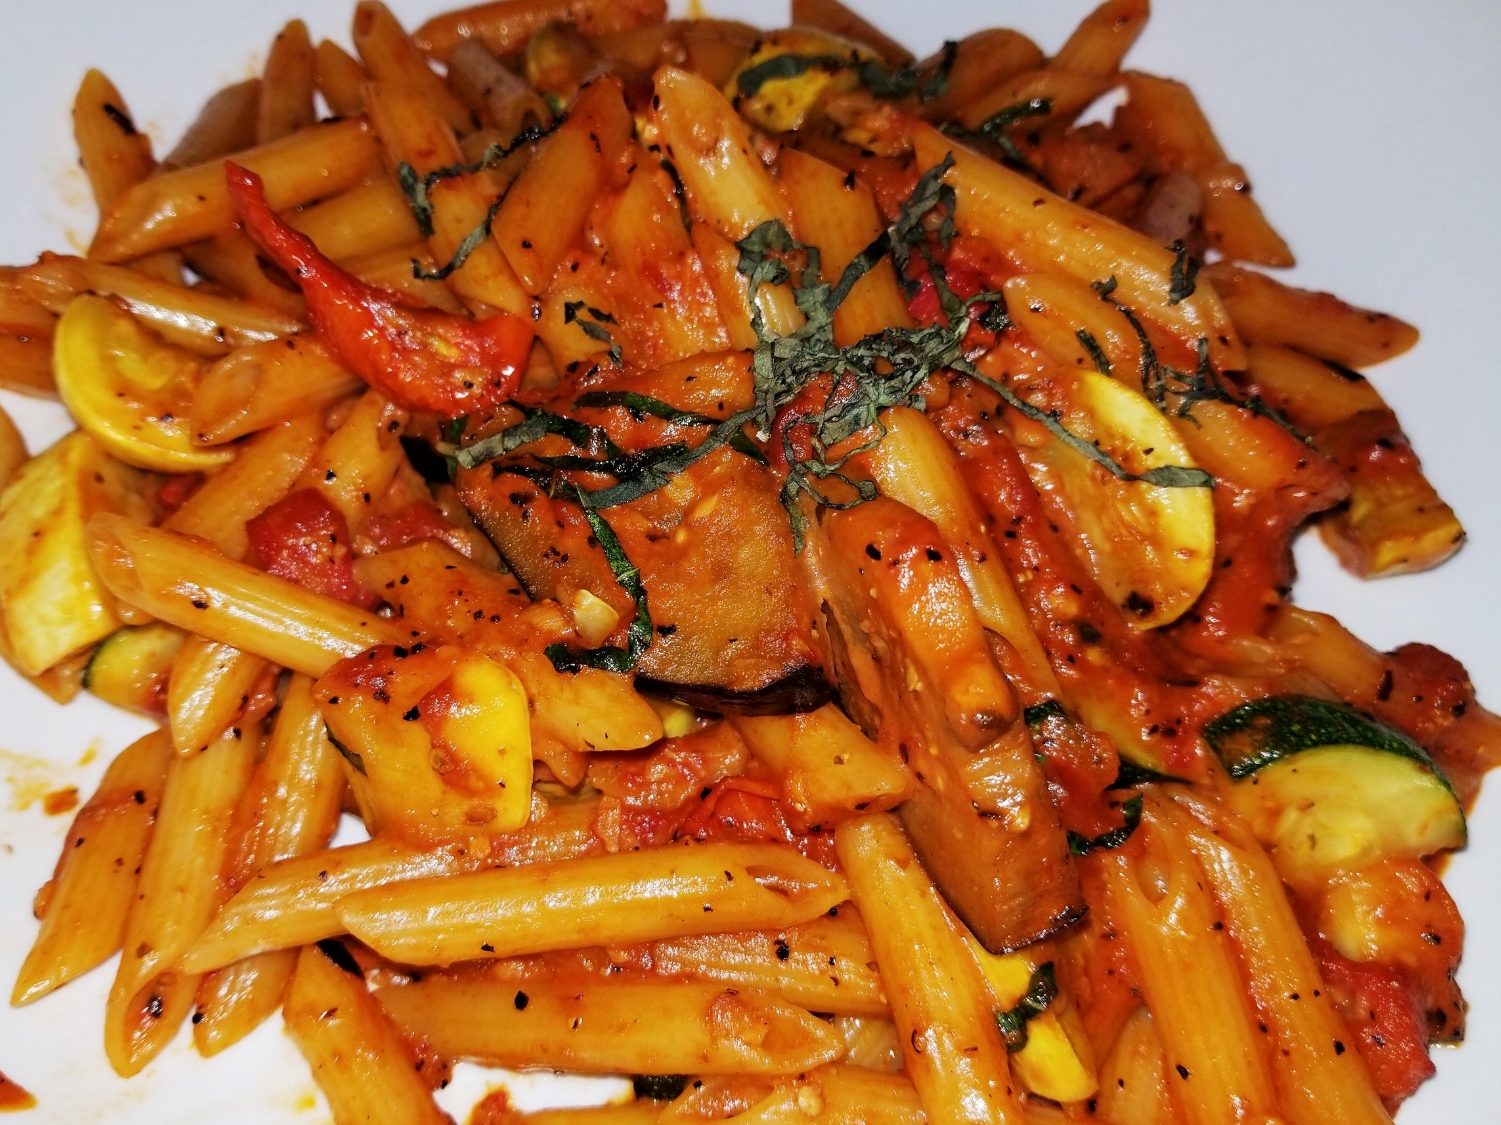 Grilled Vegetable Pasta from NBC Sports Grill and Brew